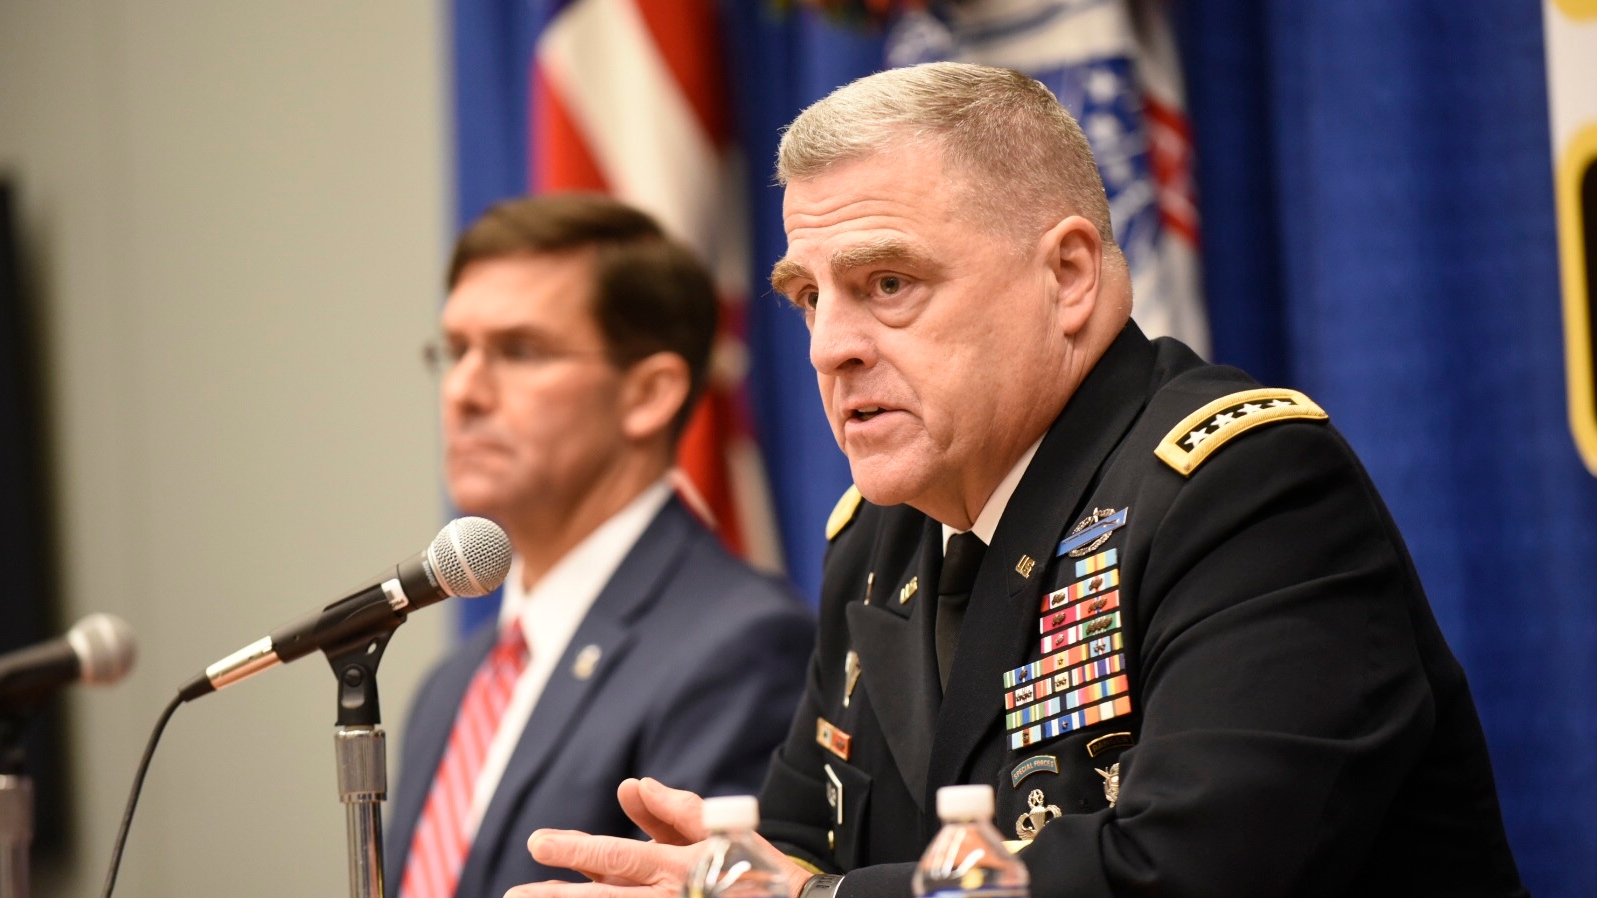 Army Chief of Staff Gen. Mark Milley, right, and Army Secretary Mark Esper, left, during a press conference at AUSA on Monday Oct.8, 2018. (Stephen Barrett/Special to Defense News & Army Times)